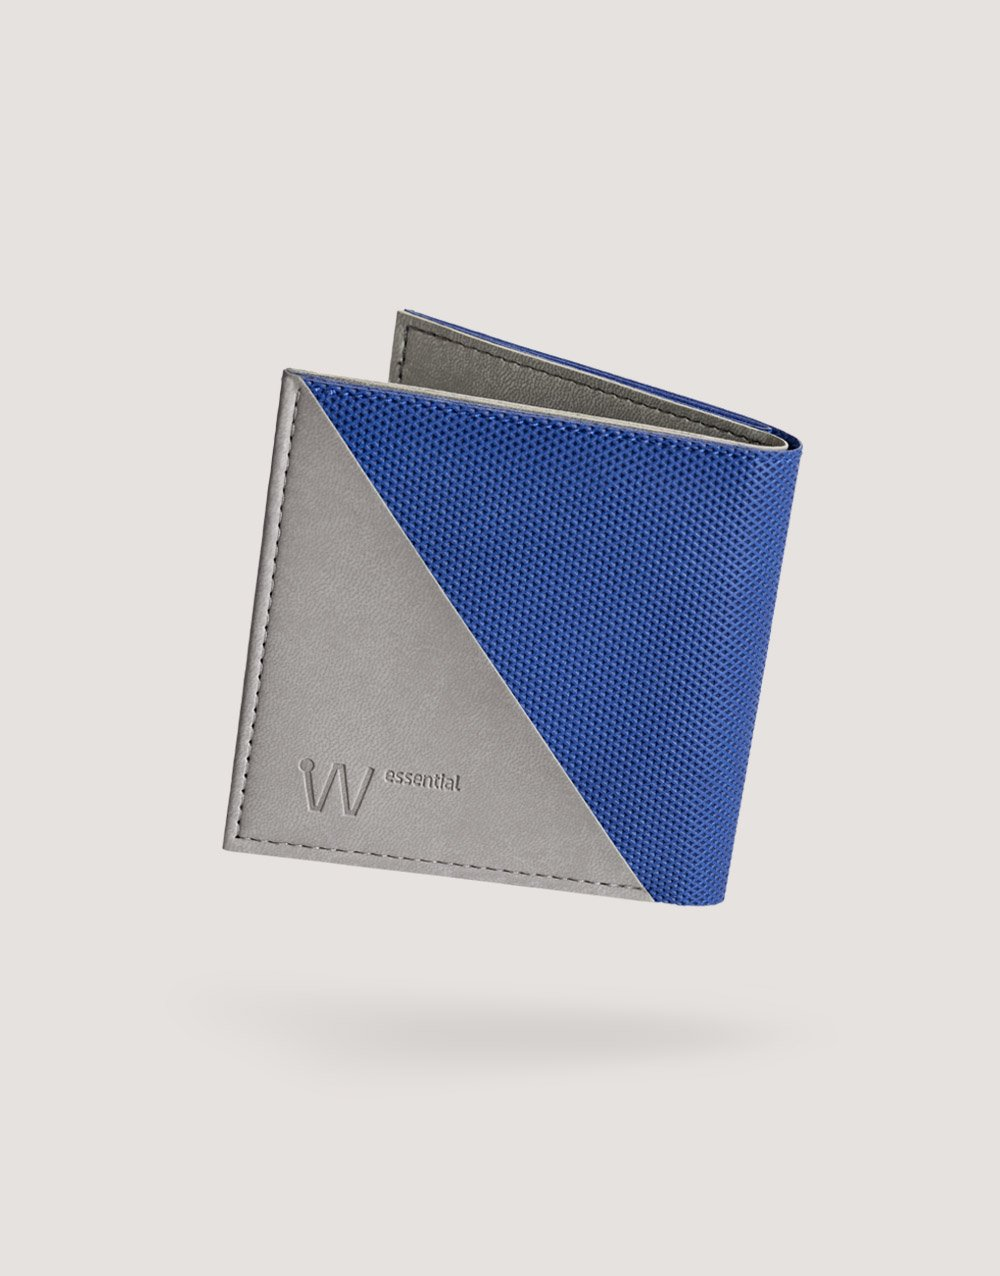 Baggizmo Wiseward Essential RFID wallet limited edition blue wallet